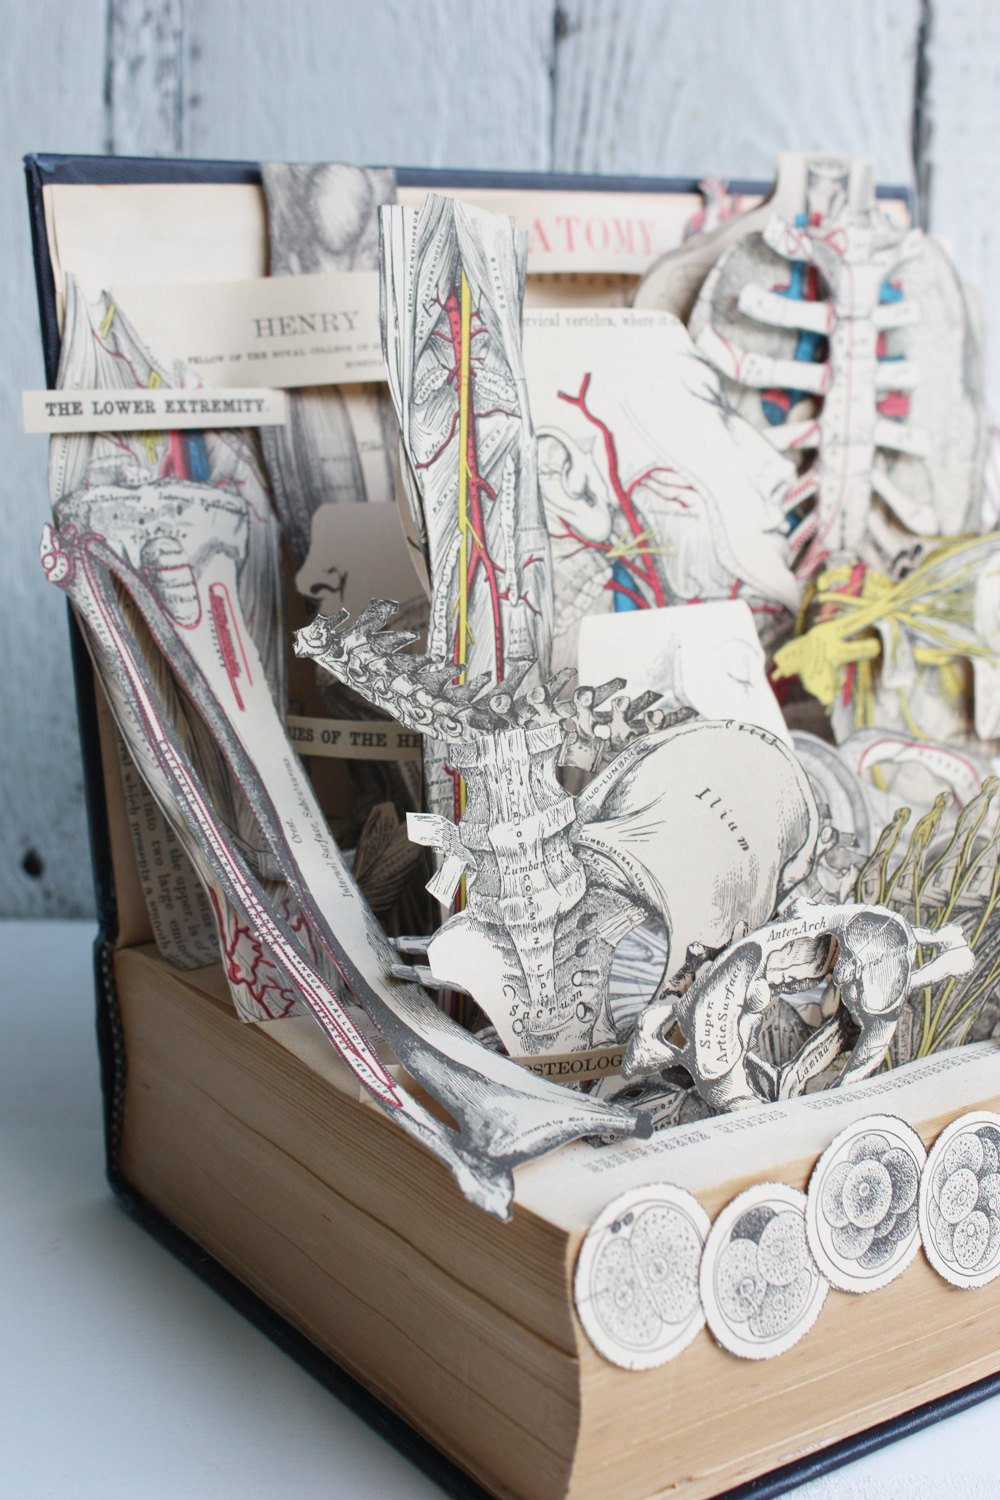 grays-anatomy-book-sculpture-01.jpg